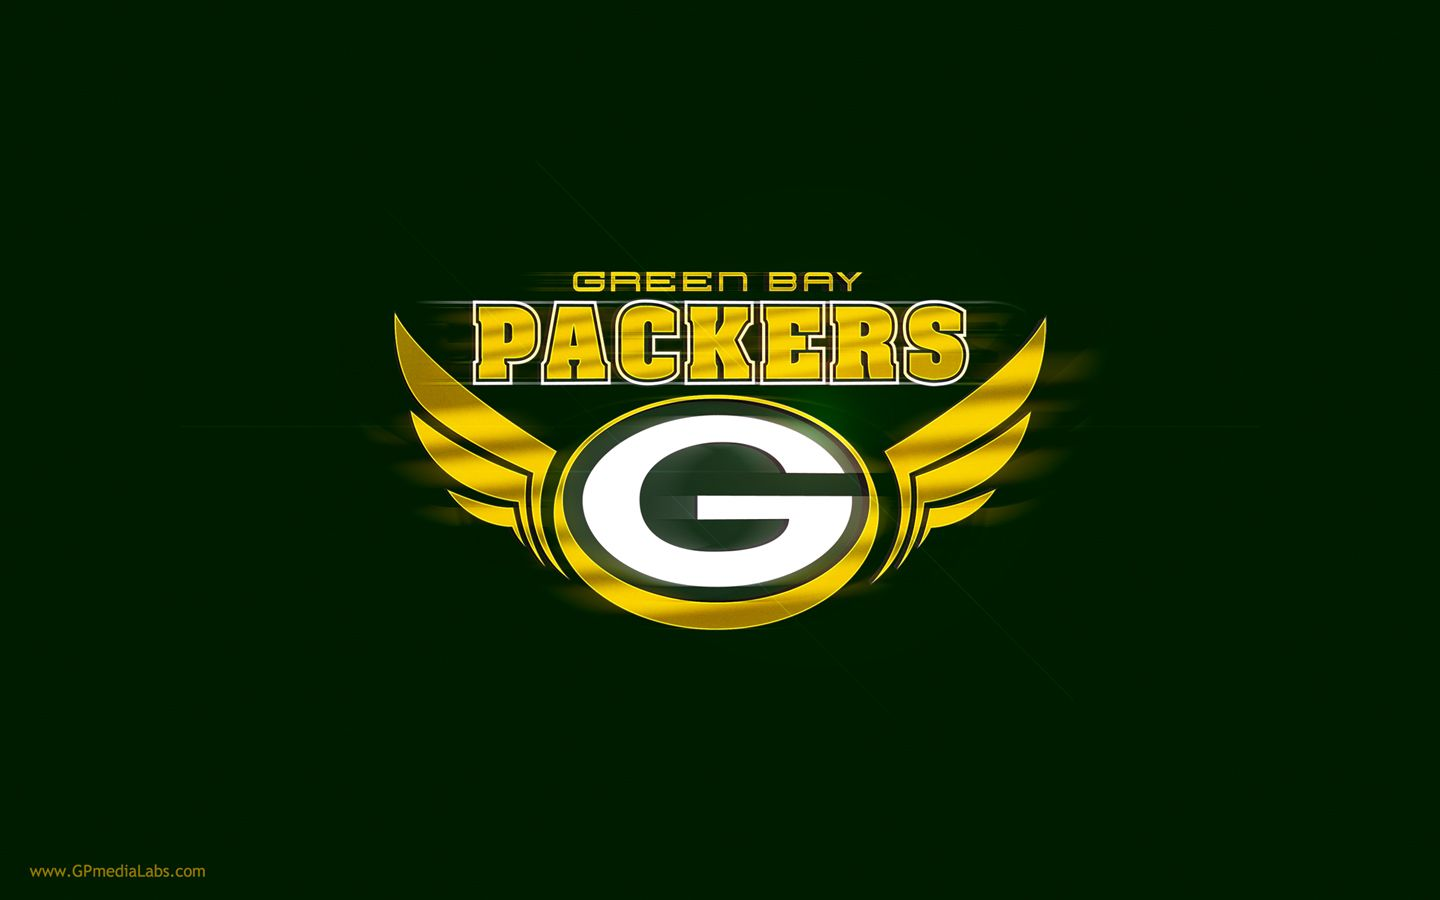 Green Bay Packer Wallpaper: Green Bay Packers Desktop